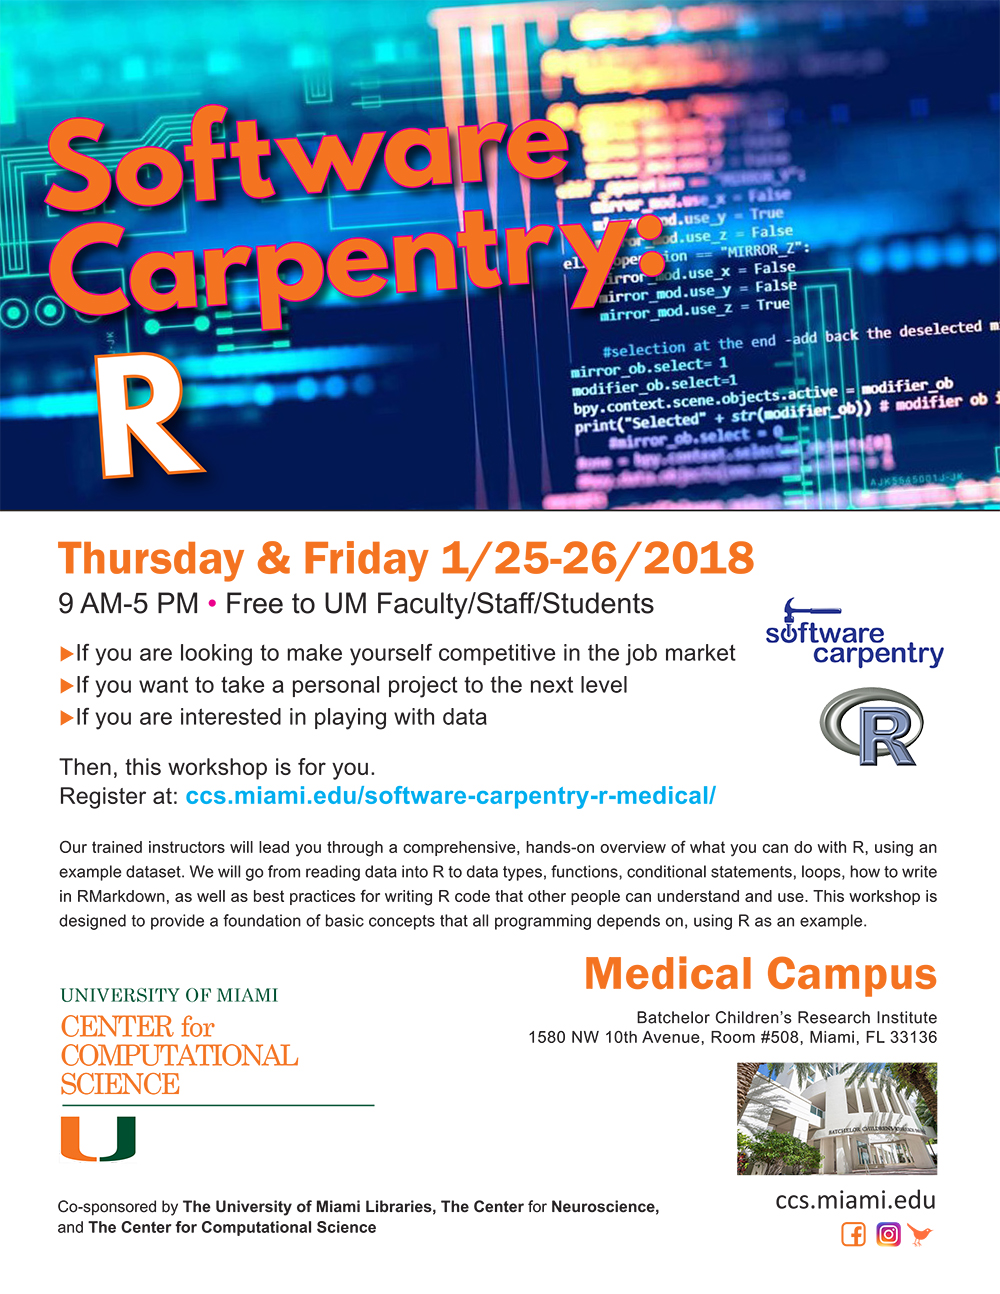 Flyer for University of Miami Center for Computational Science Software Carpentry Workshop R January 25-26, 2018 Medical campus Alehandro Mantero instructor